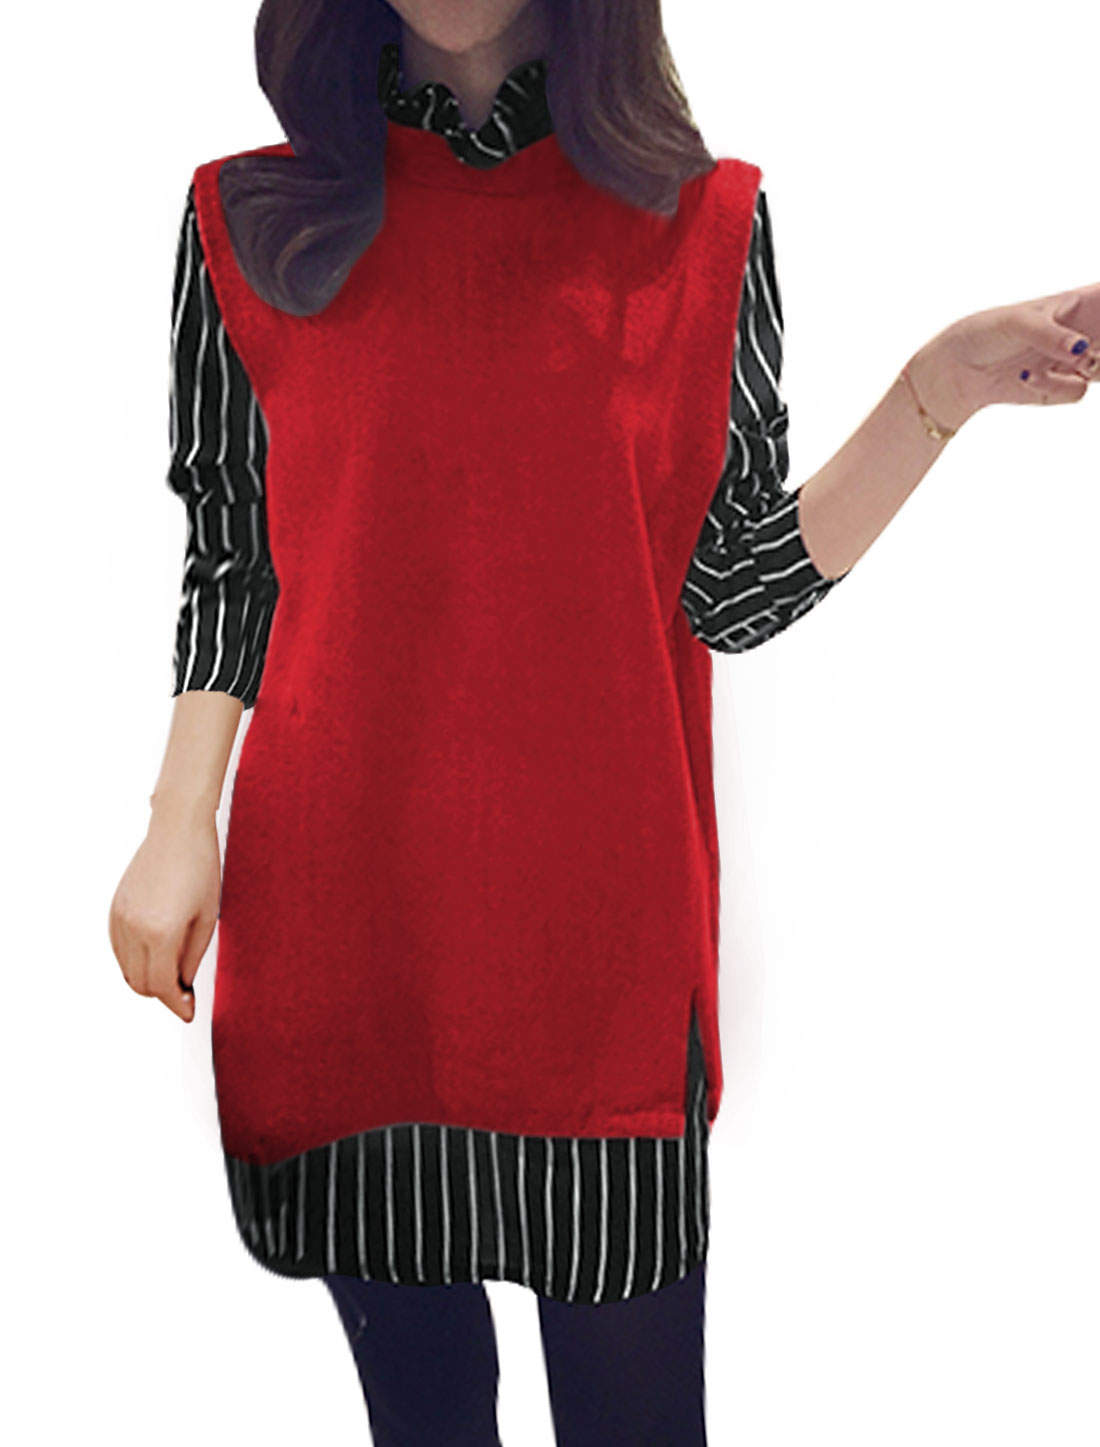 Women Stripes Ruffled Collar Paneled Layered Tunic Top Red XS